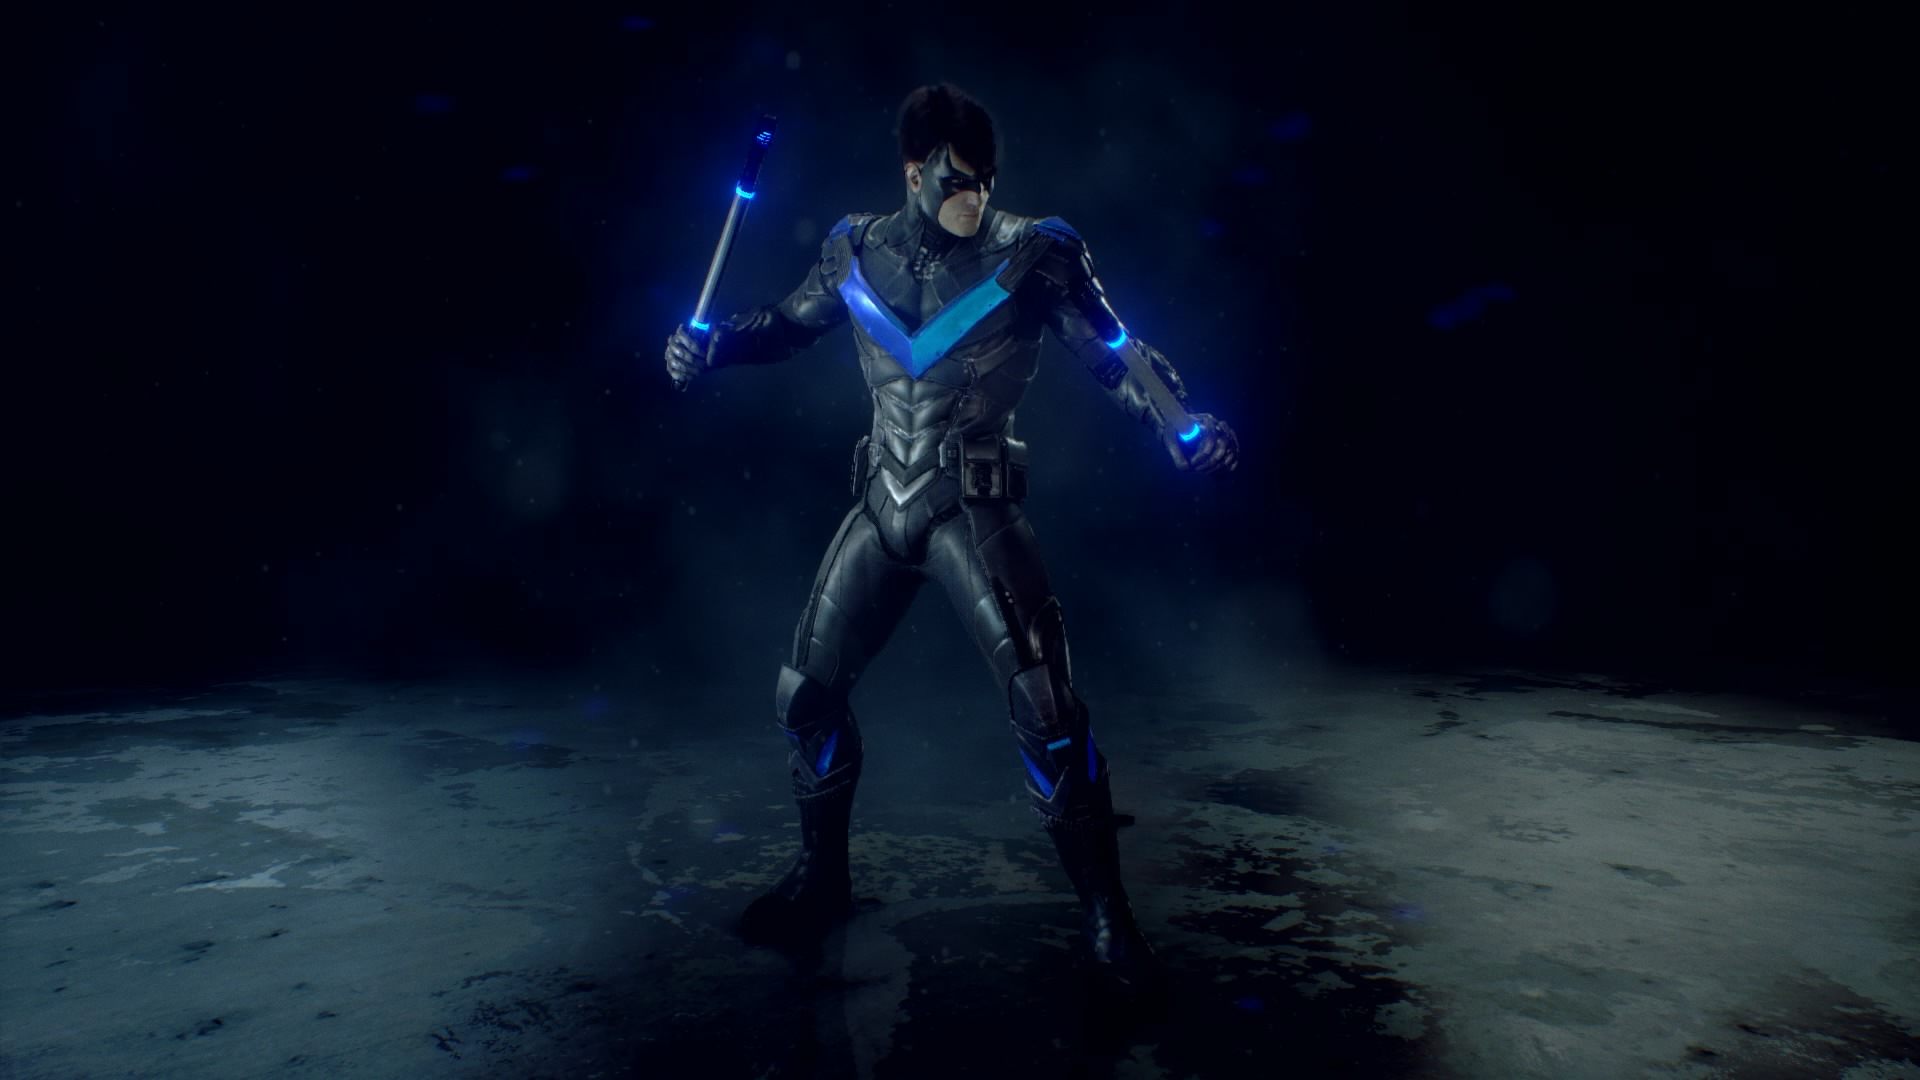 hopes for nightwing dlc wb games community